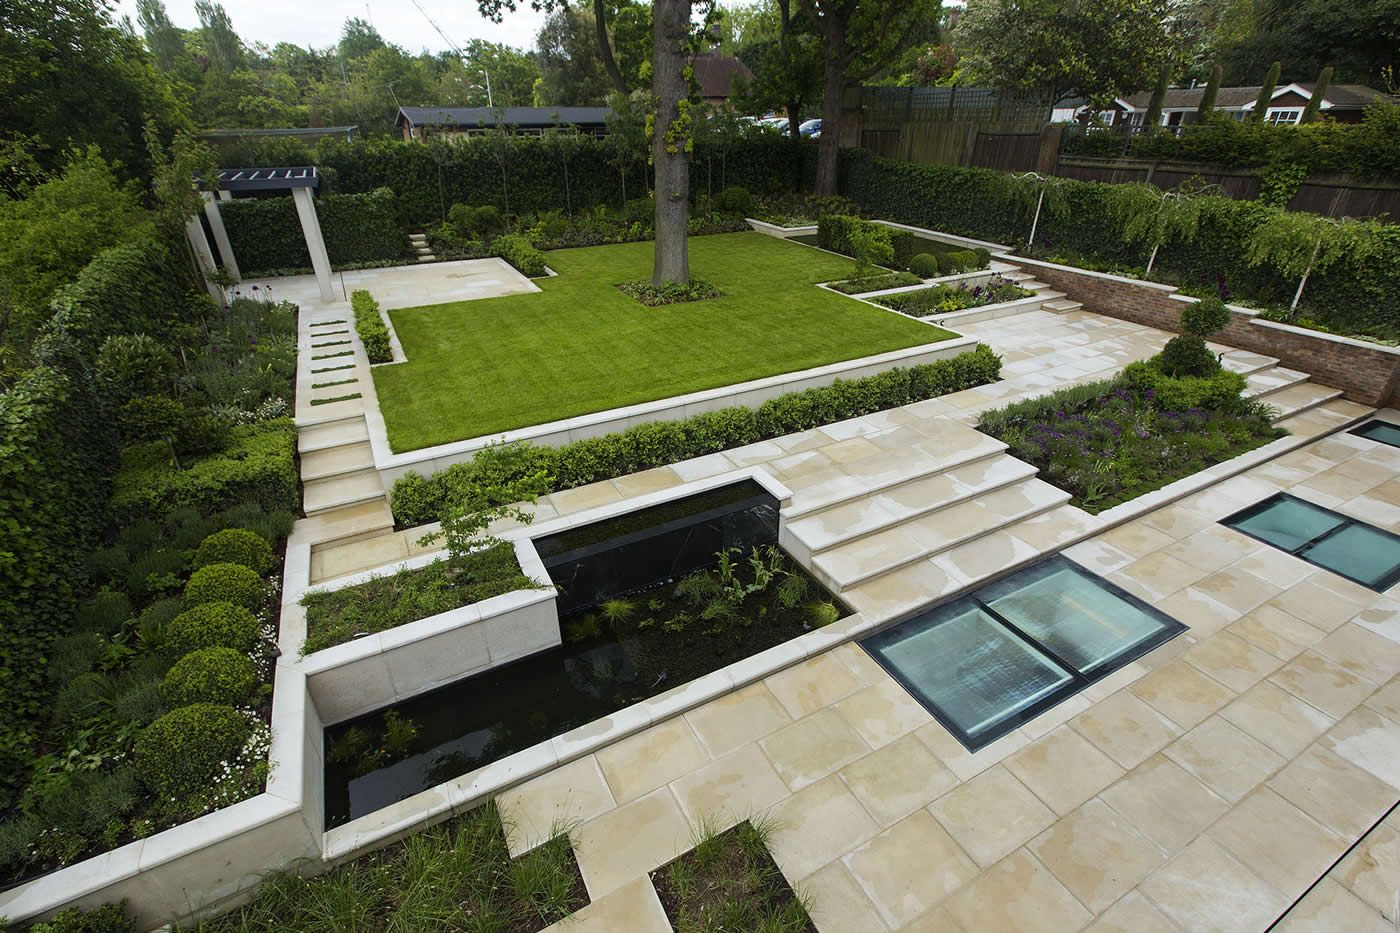 Landscaped gardens landscaped garden contemporary landscaped large garden london with pre cast stone paving led lighting and irrigation workwithnaturefo